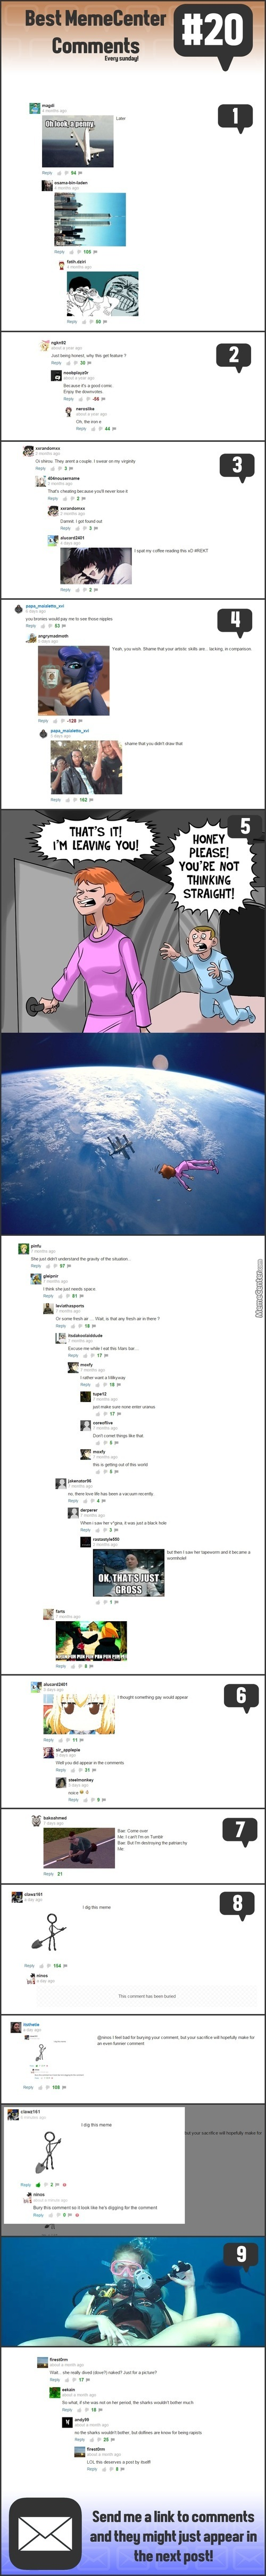 Best Memecenter Comments #20 - I Dig This Meme